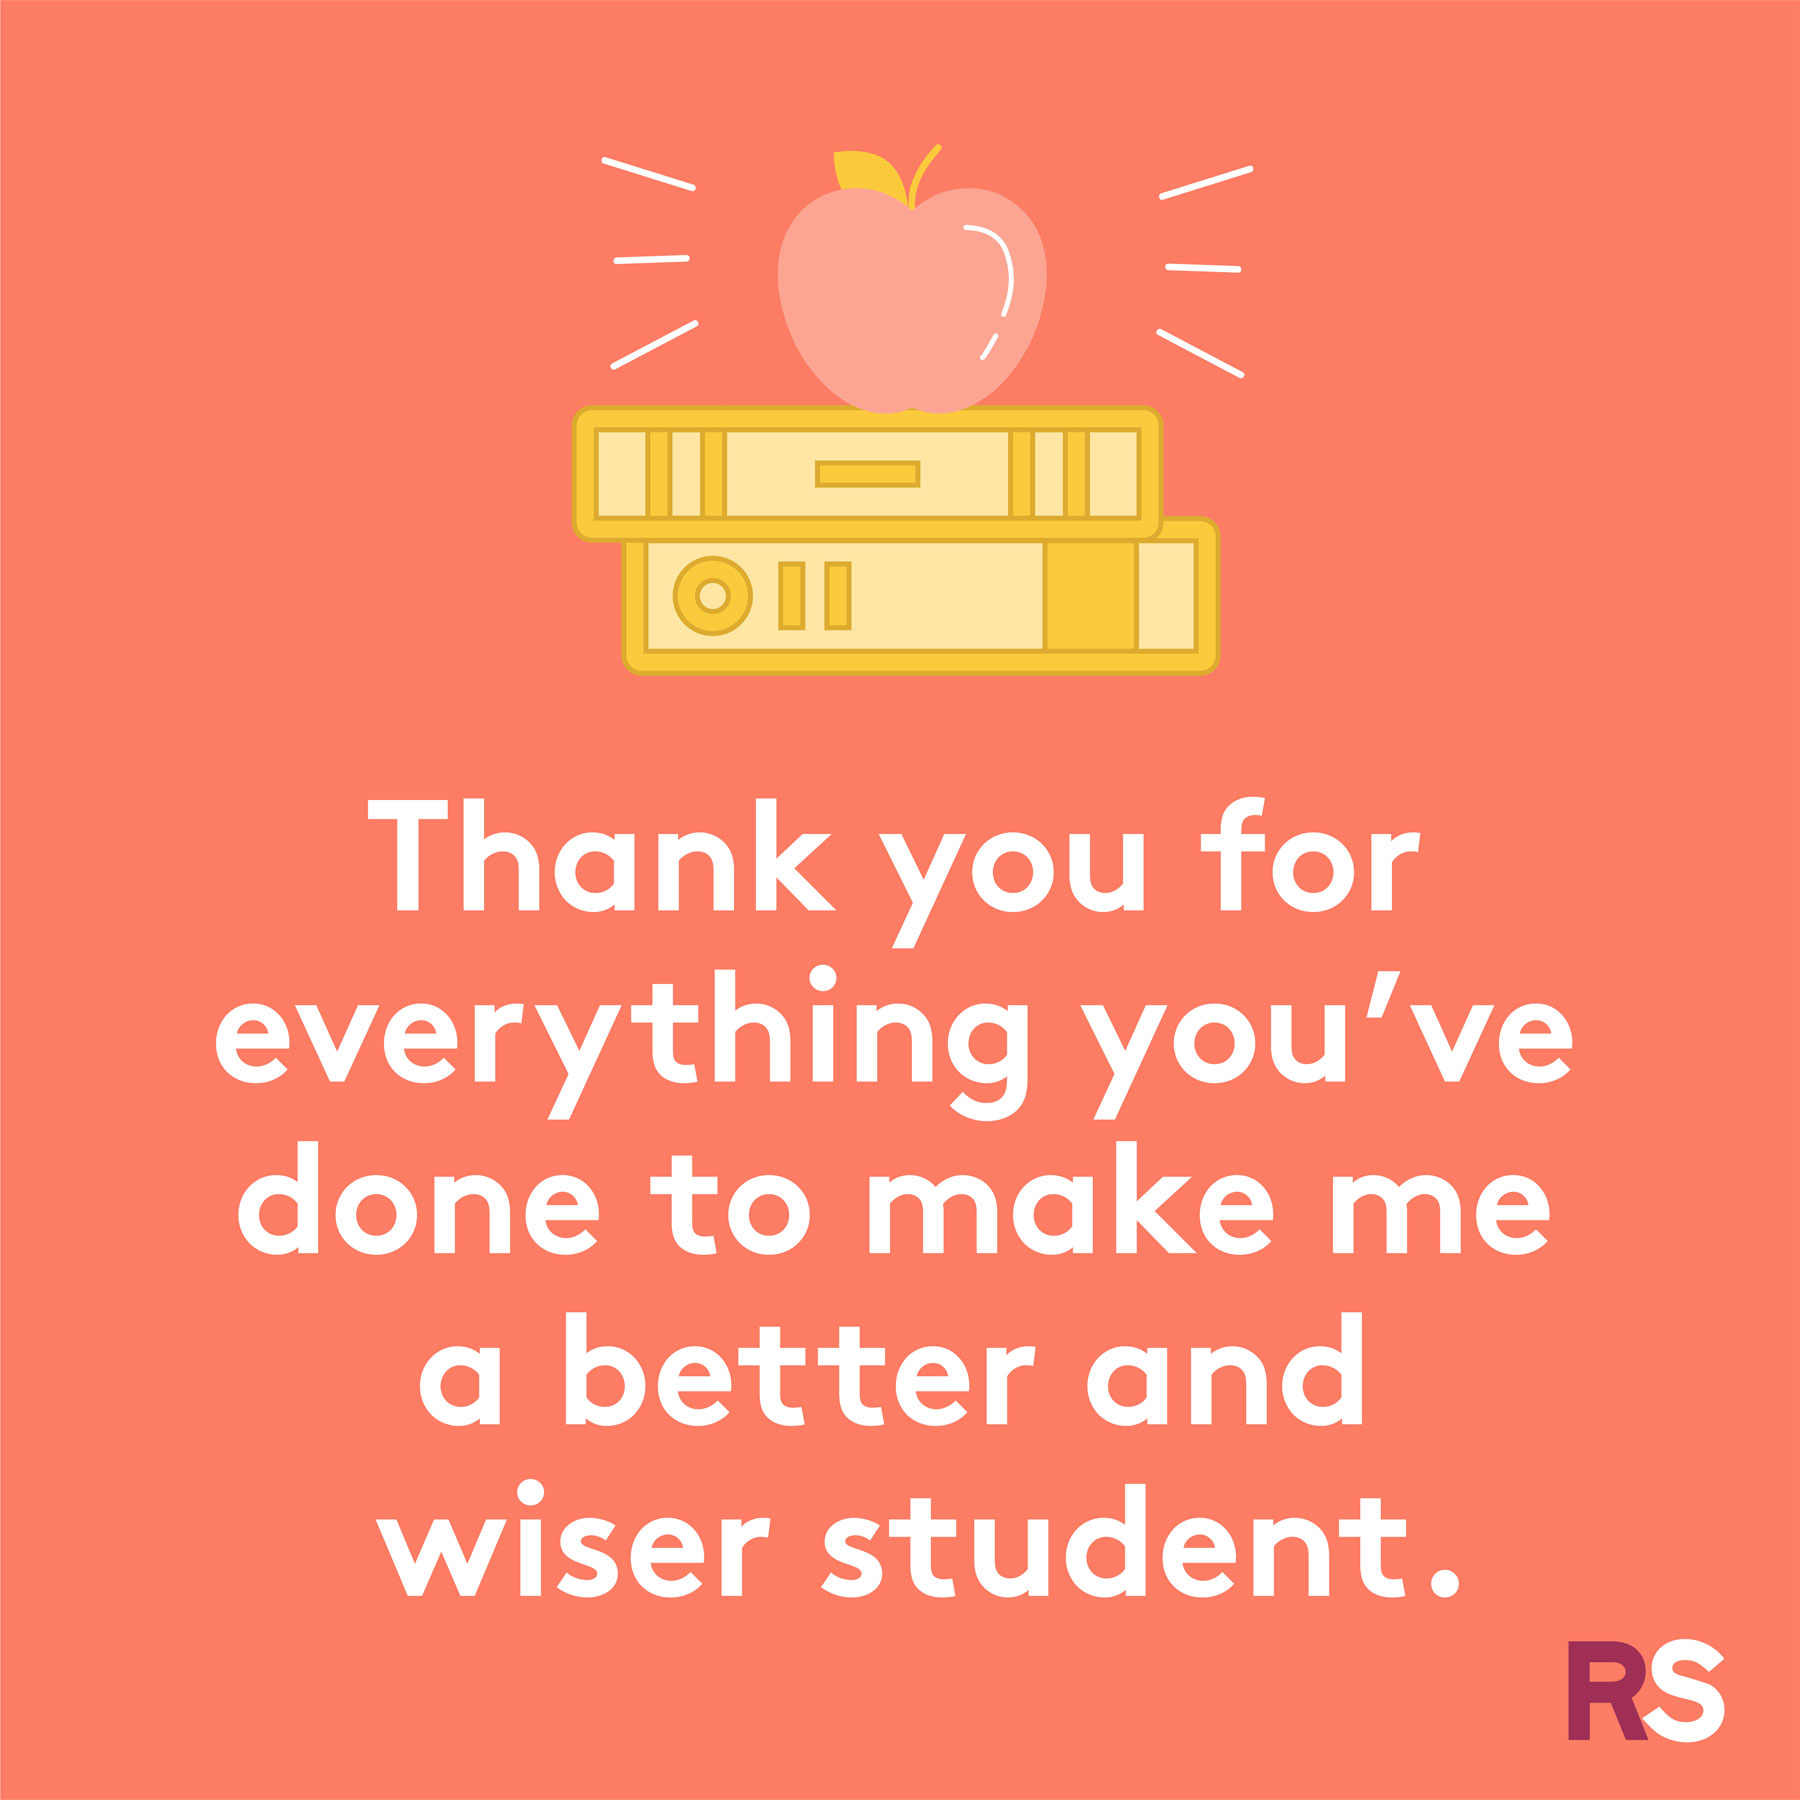 Thanksgiving wishes, messages, captions - note to teacher